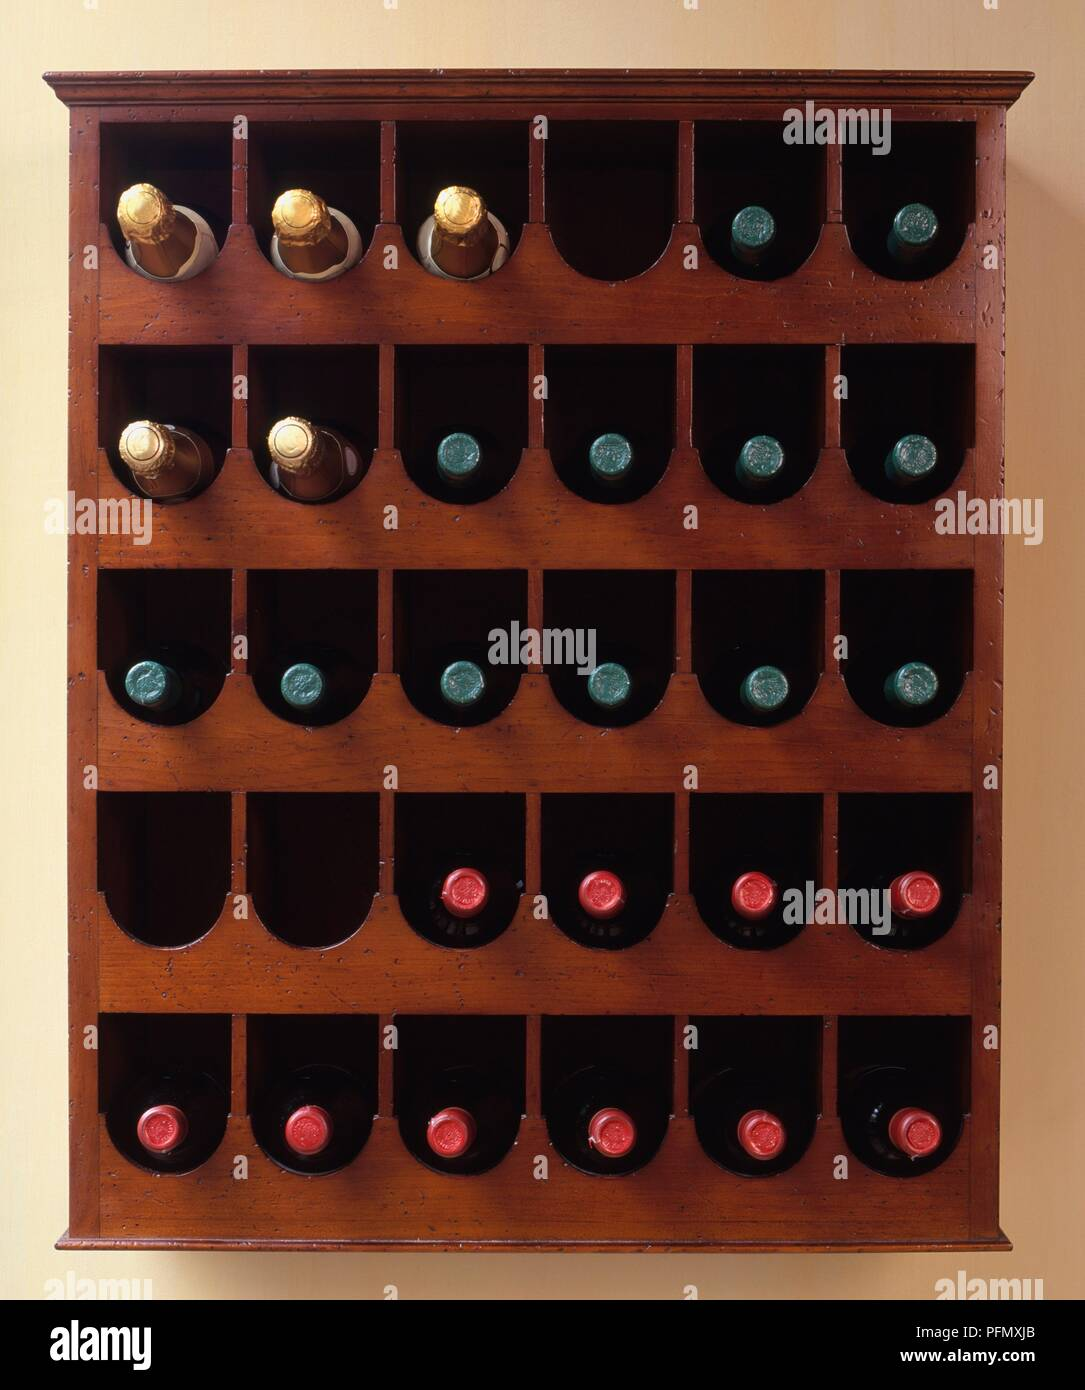 Bottles of Champagne and wine in polished wood rack - Stock Image